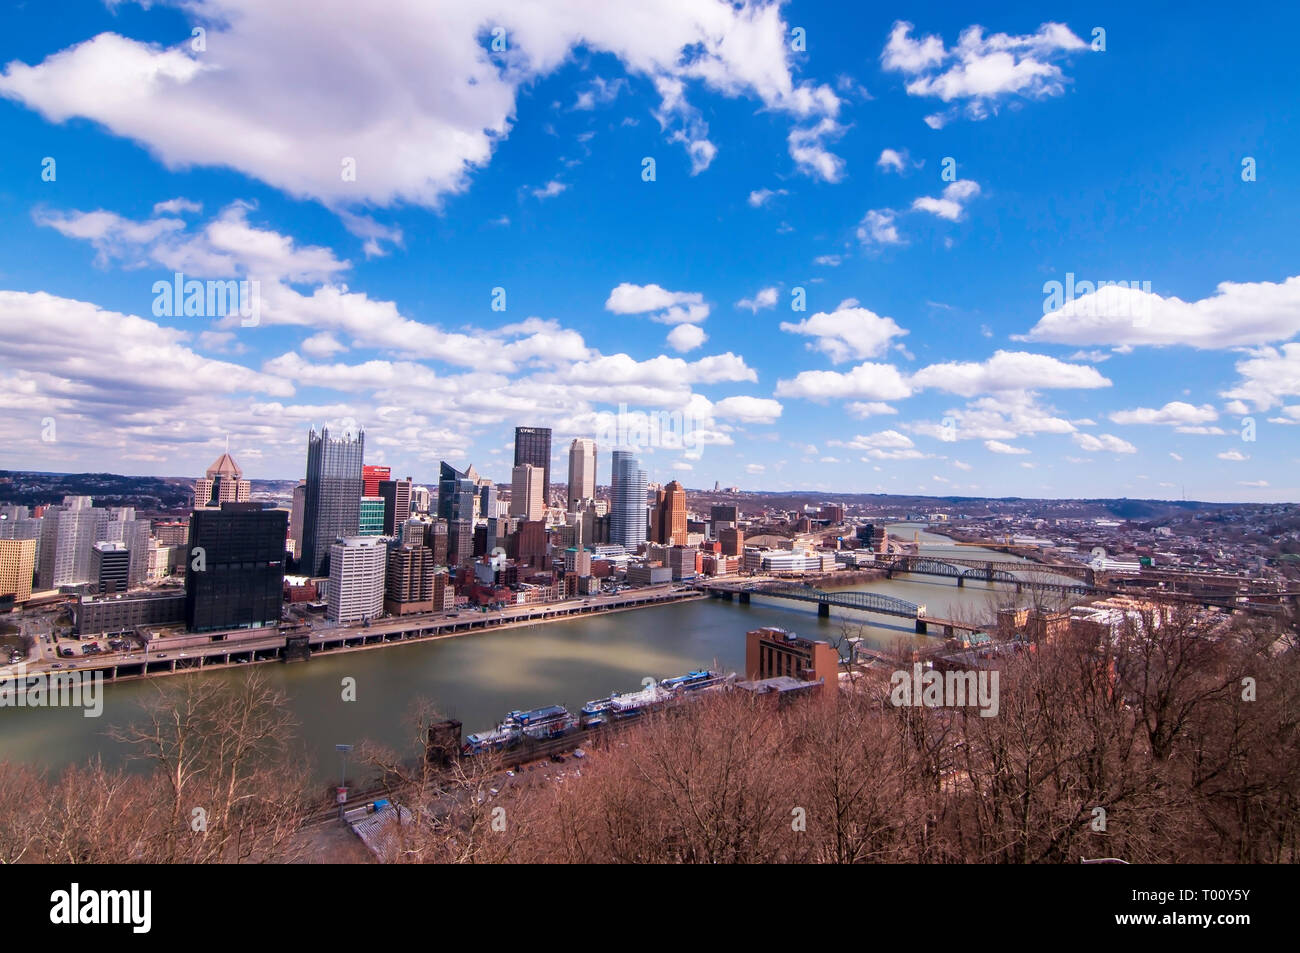 A view of downtown from the Grandview Overlook in Mt Washington on a bright winter day in Pittsburgh, Pennsylvania, USA Stock Photo